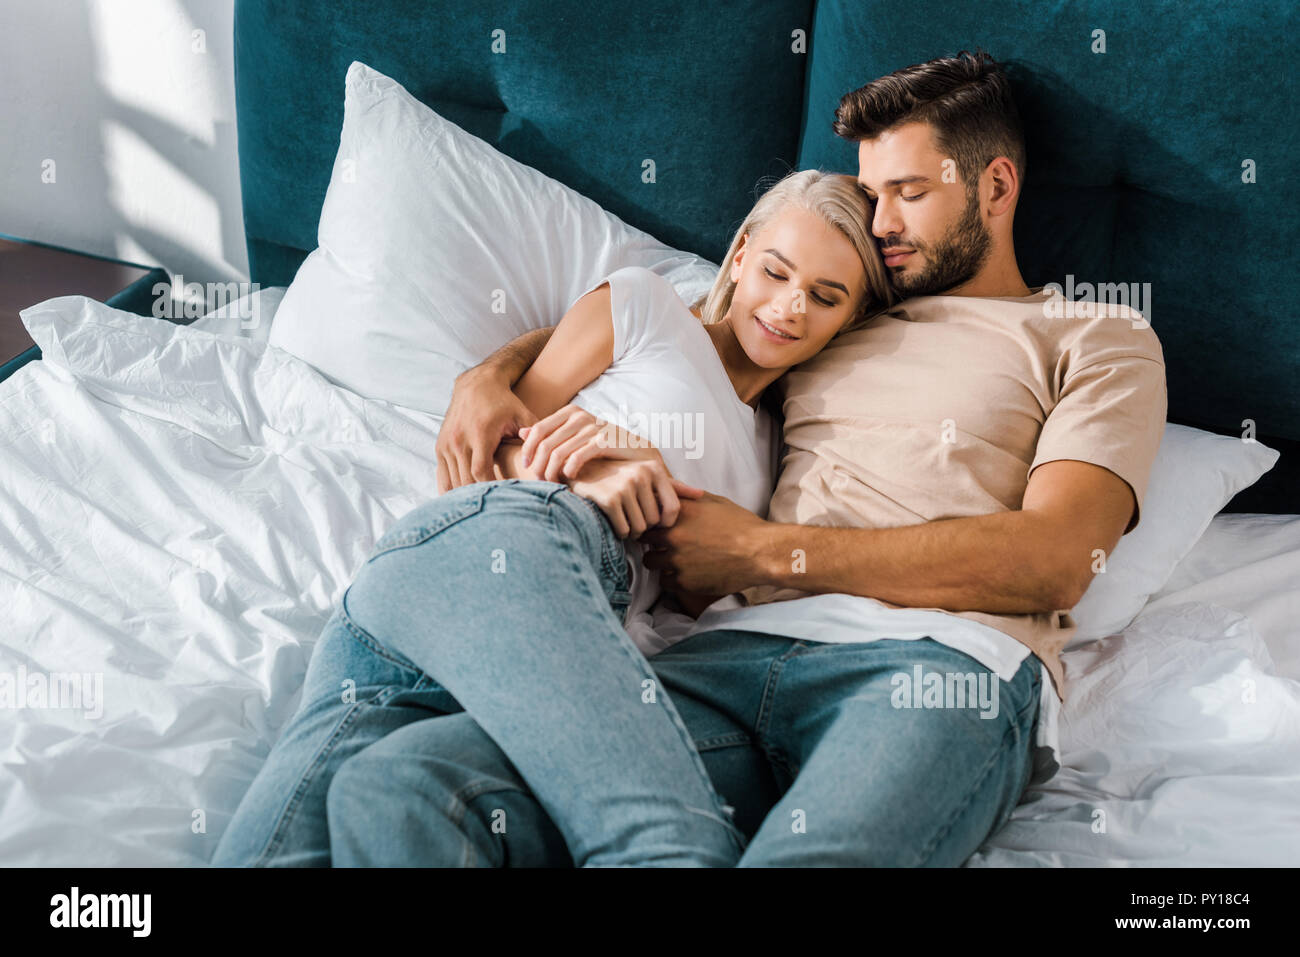 Young Couple Hugging And Sleeping On Bed In Bedroom Stock Photo Alamy